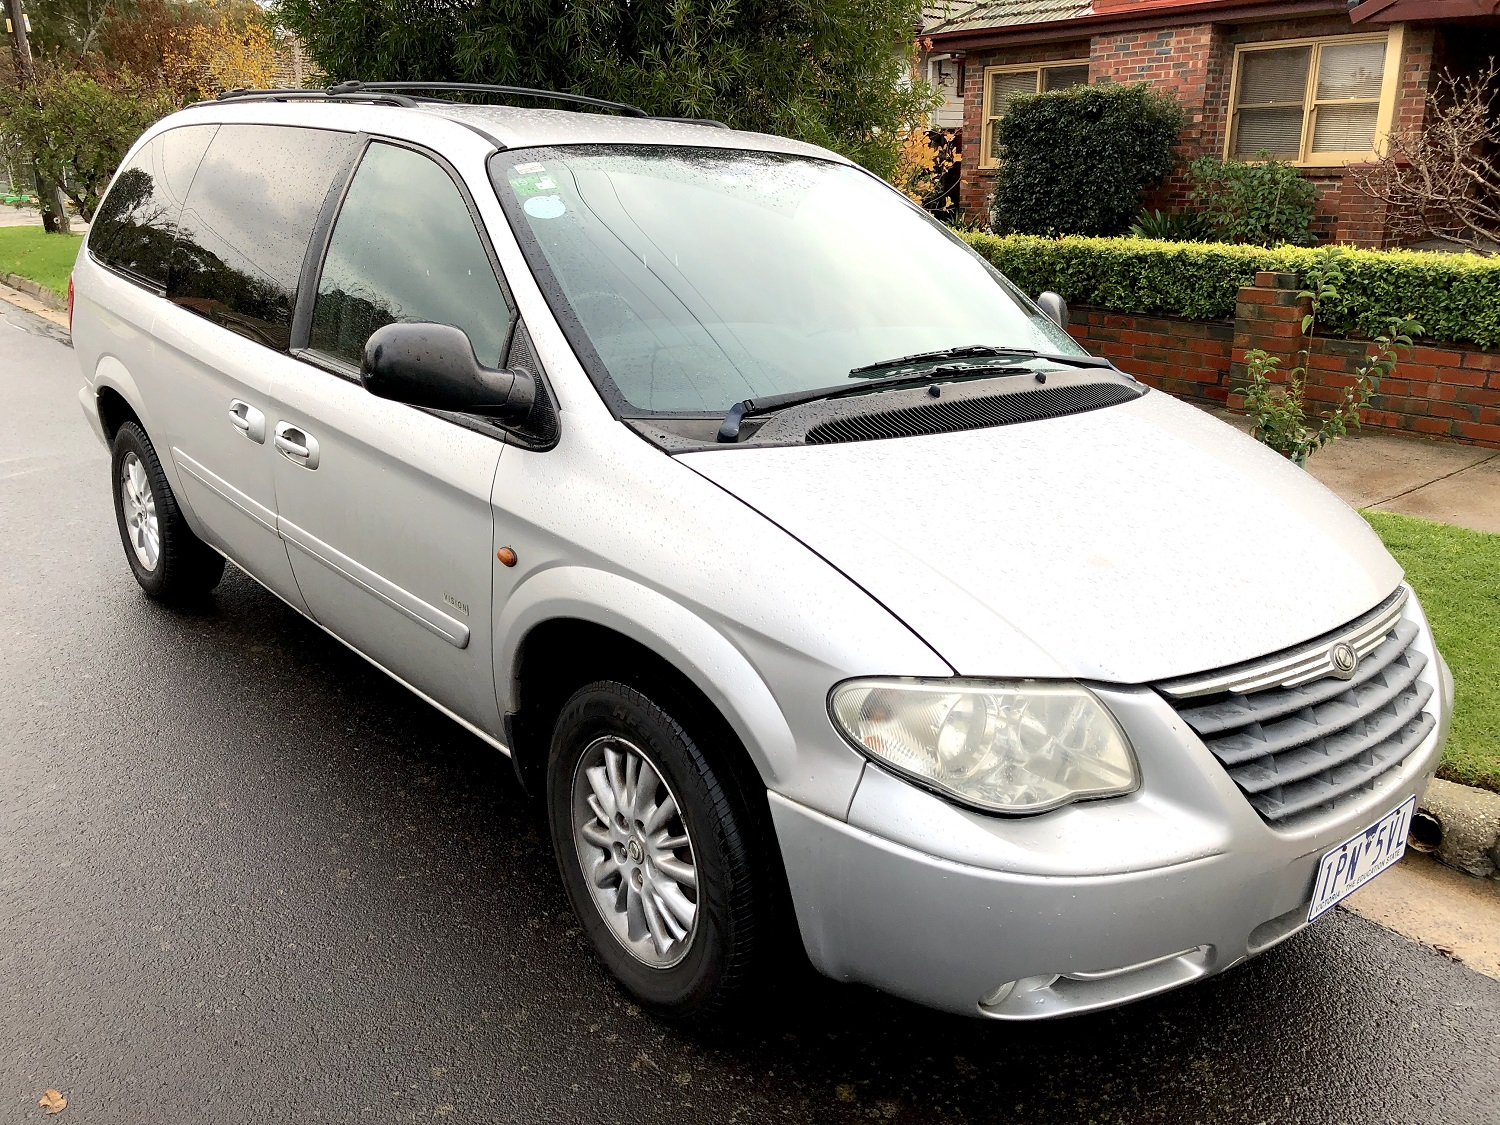 Picture of William's 2007 Chrysler Grand Voyager